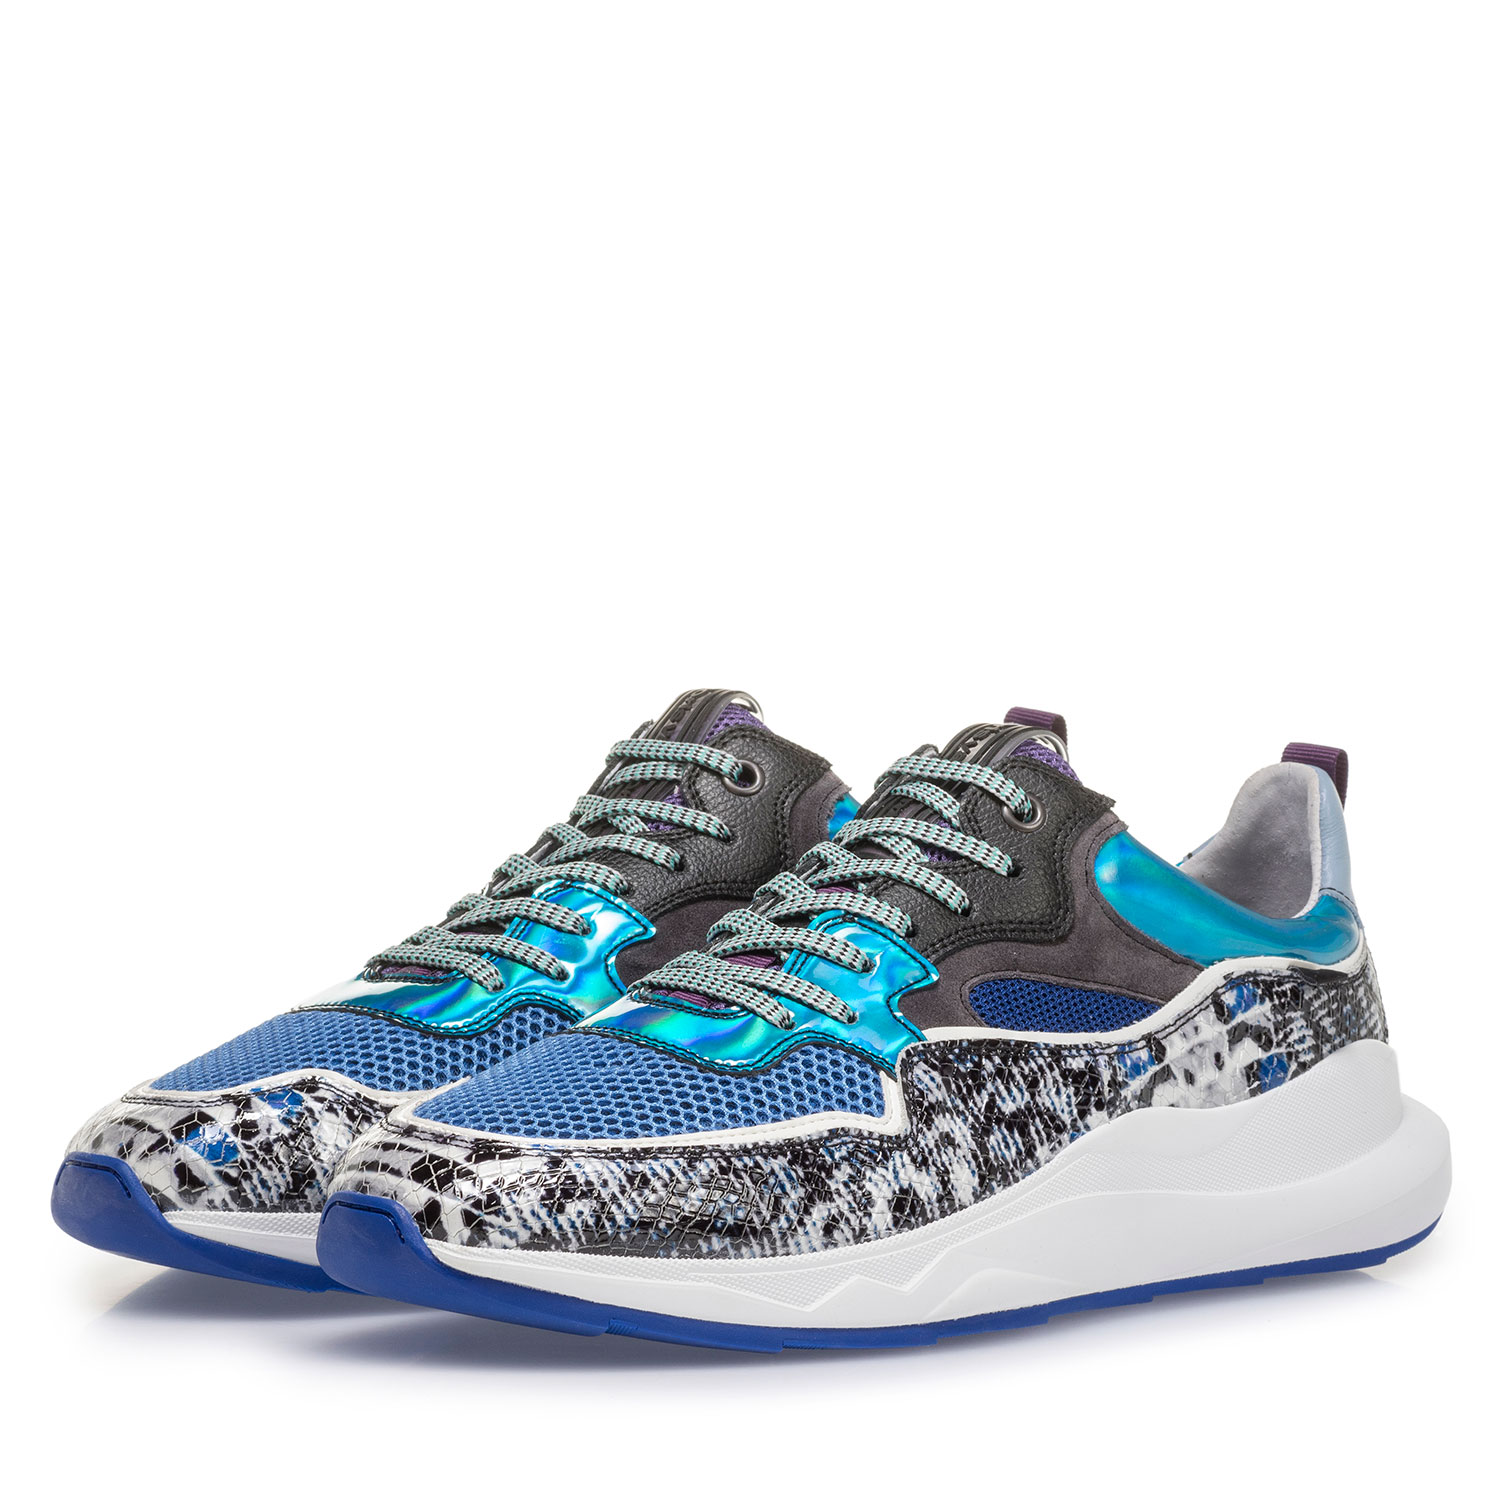 16269/24 - Multi-colour sneaker with grey and blue print